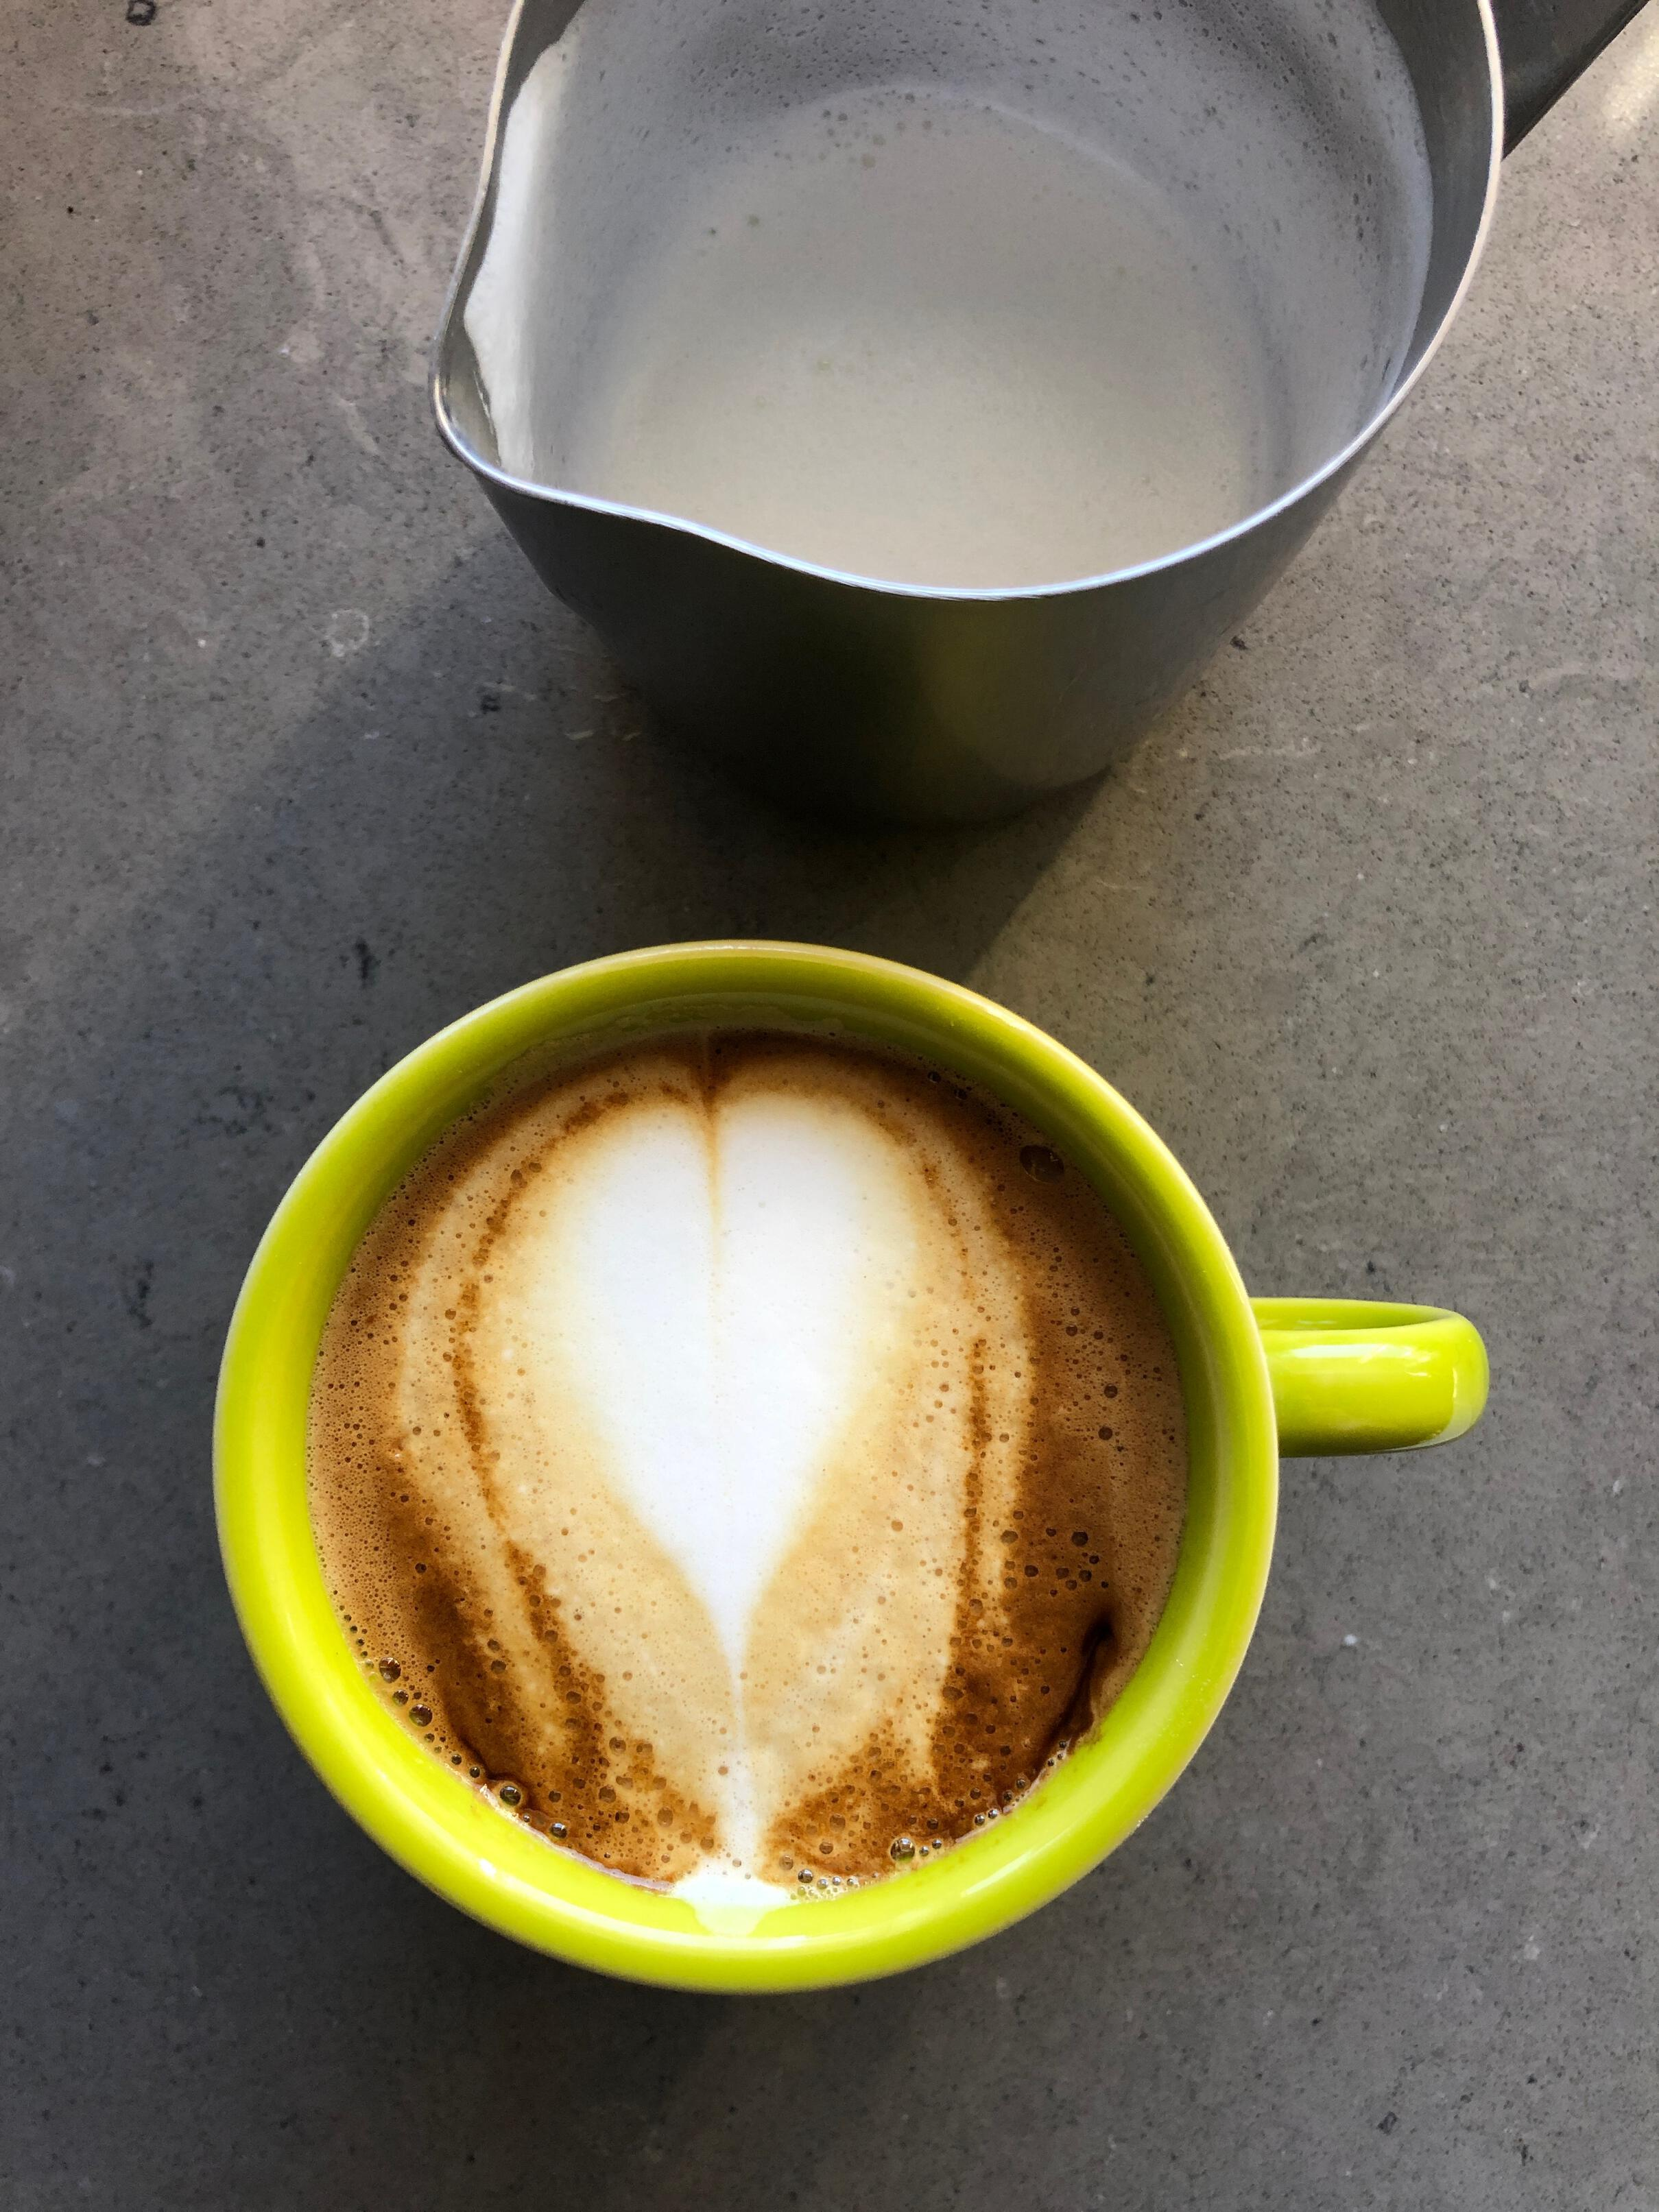 Photo of a cappuccino with a heart-shaped pour of milk.